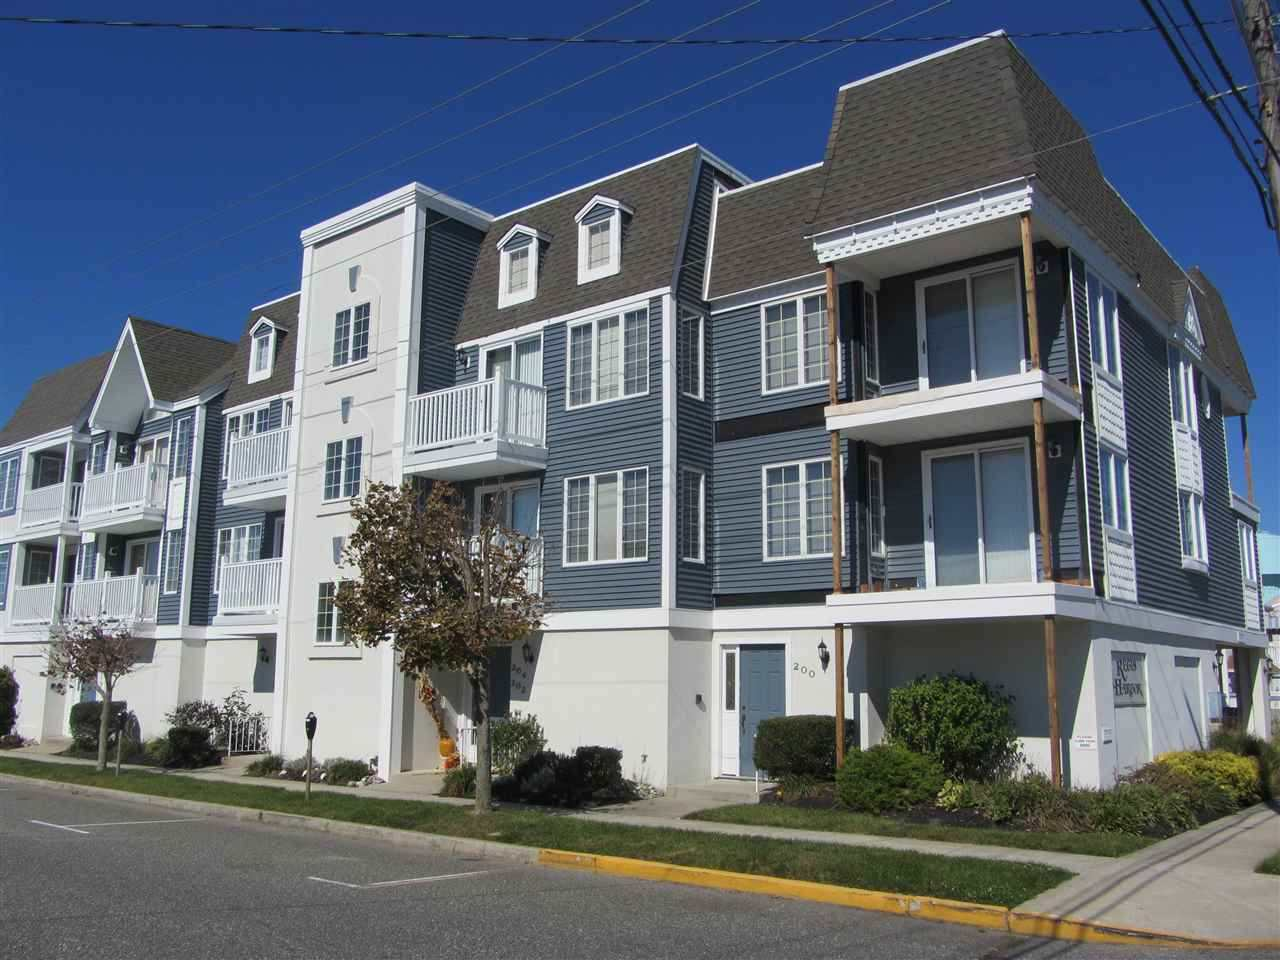 204 99th Street - Stone Harbor